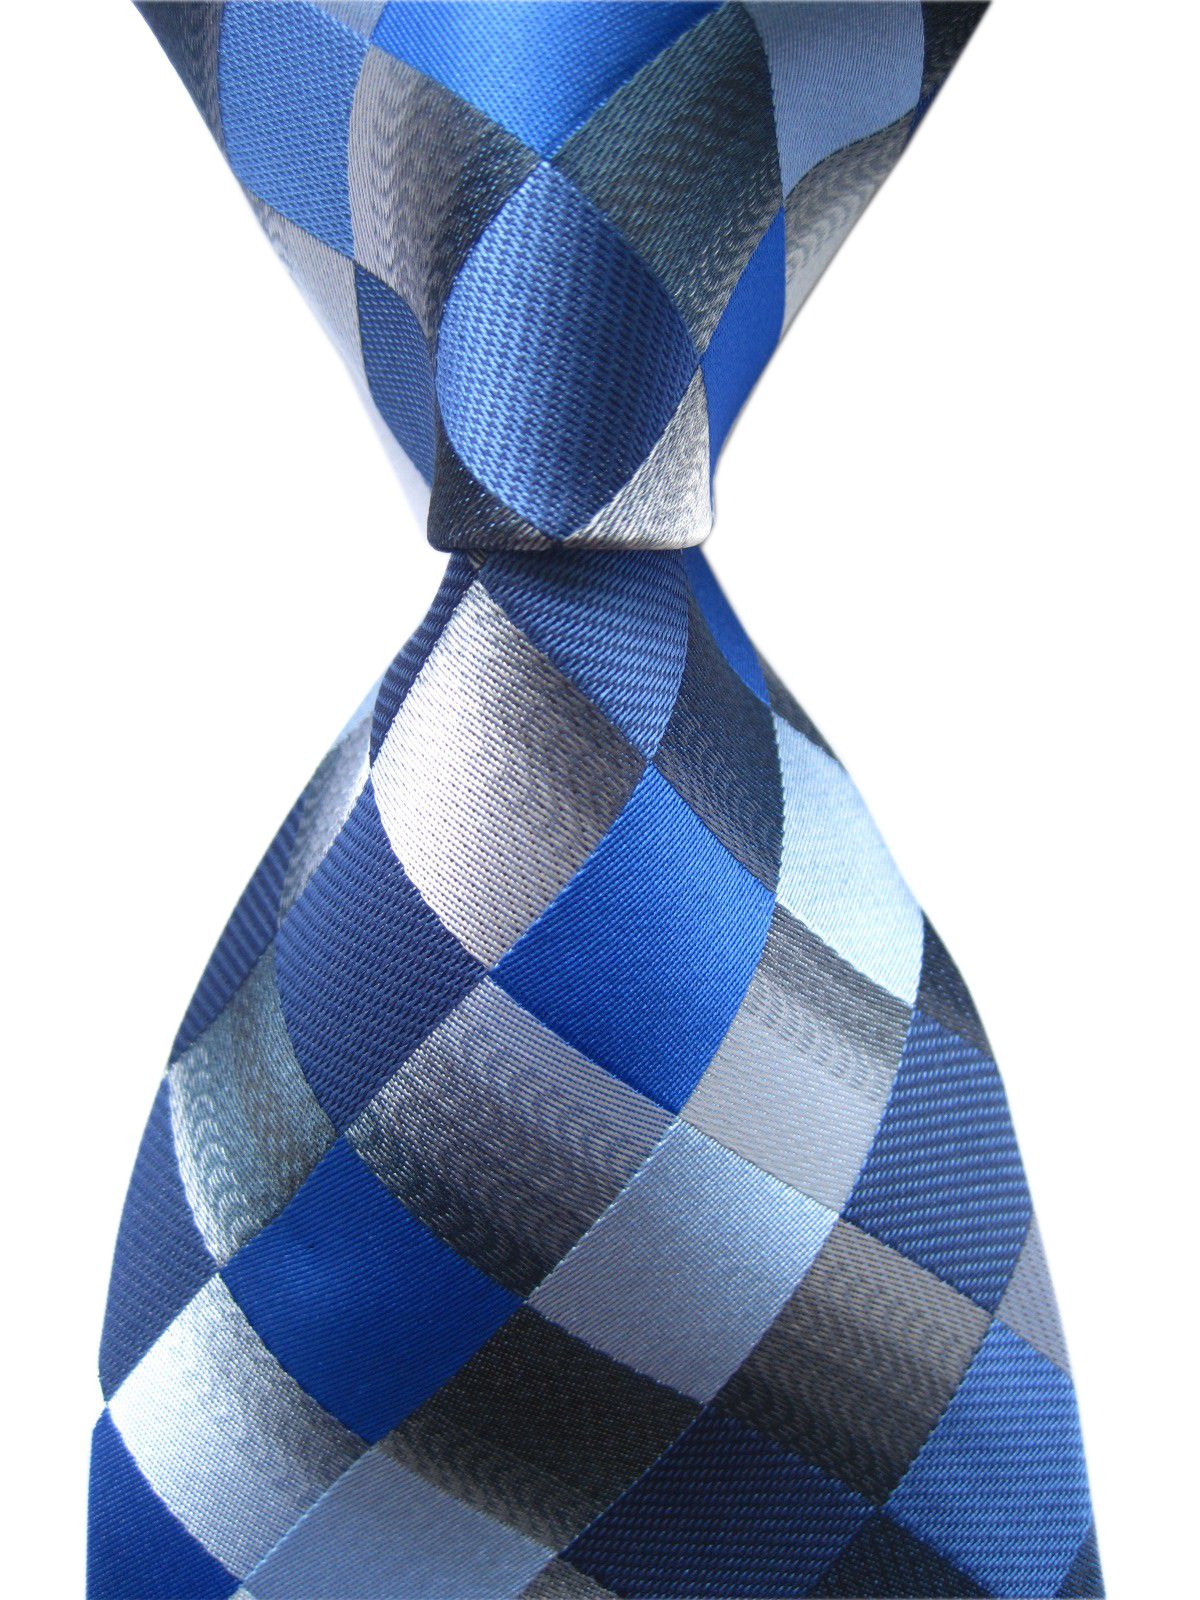 Secdtie Men's Classic Checks Dark Blue Grey Jacquard Woven Silk Tie Necktie